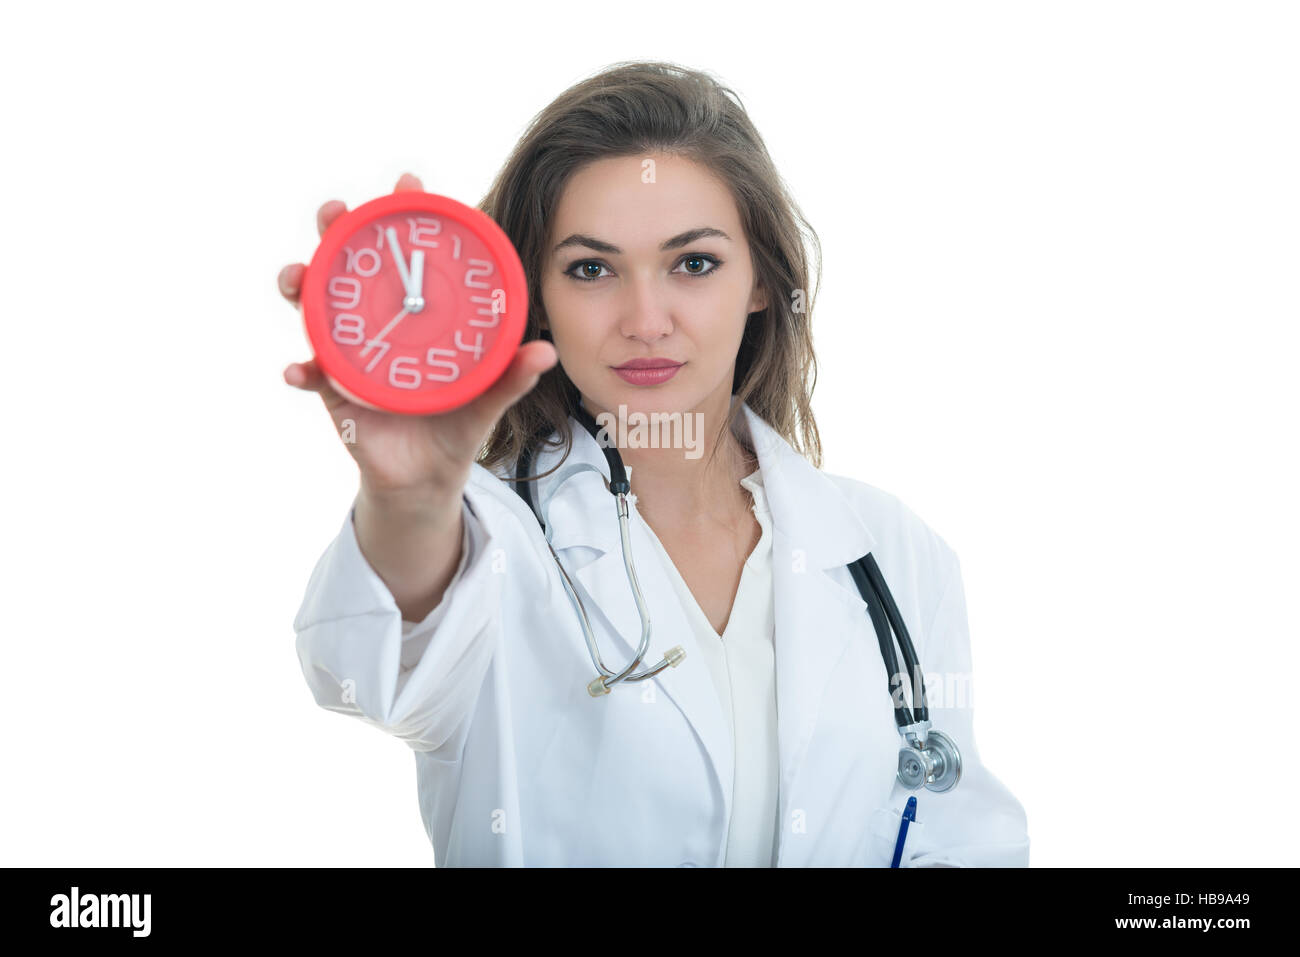 Serious female doctor holding clock. - Stock Image